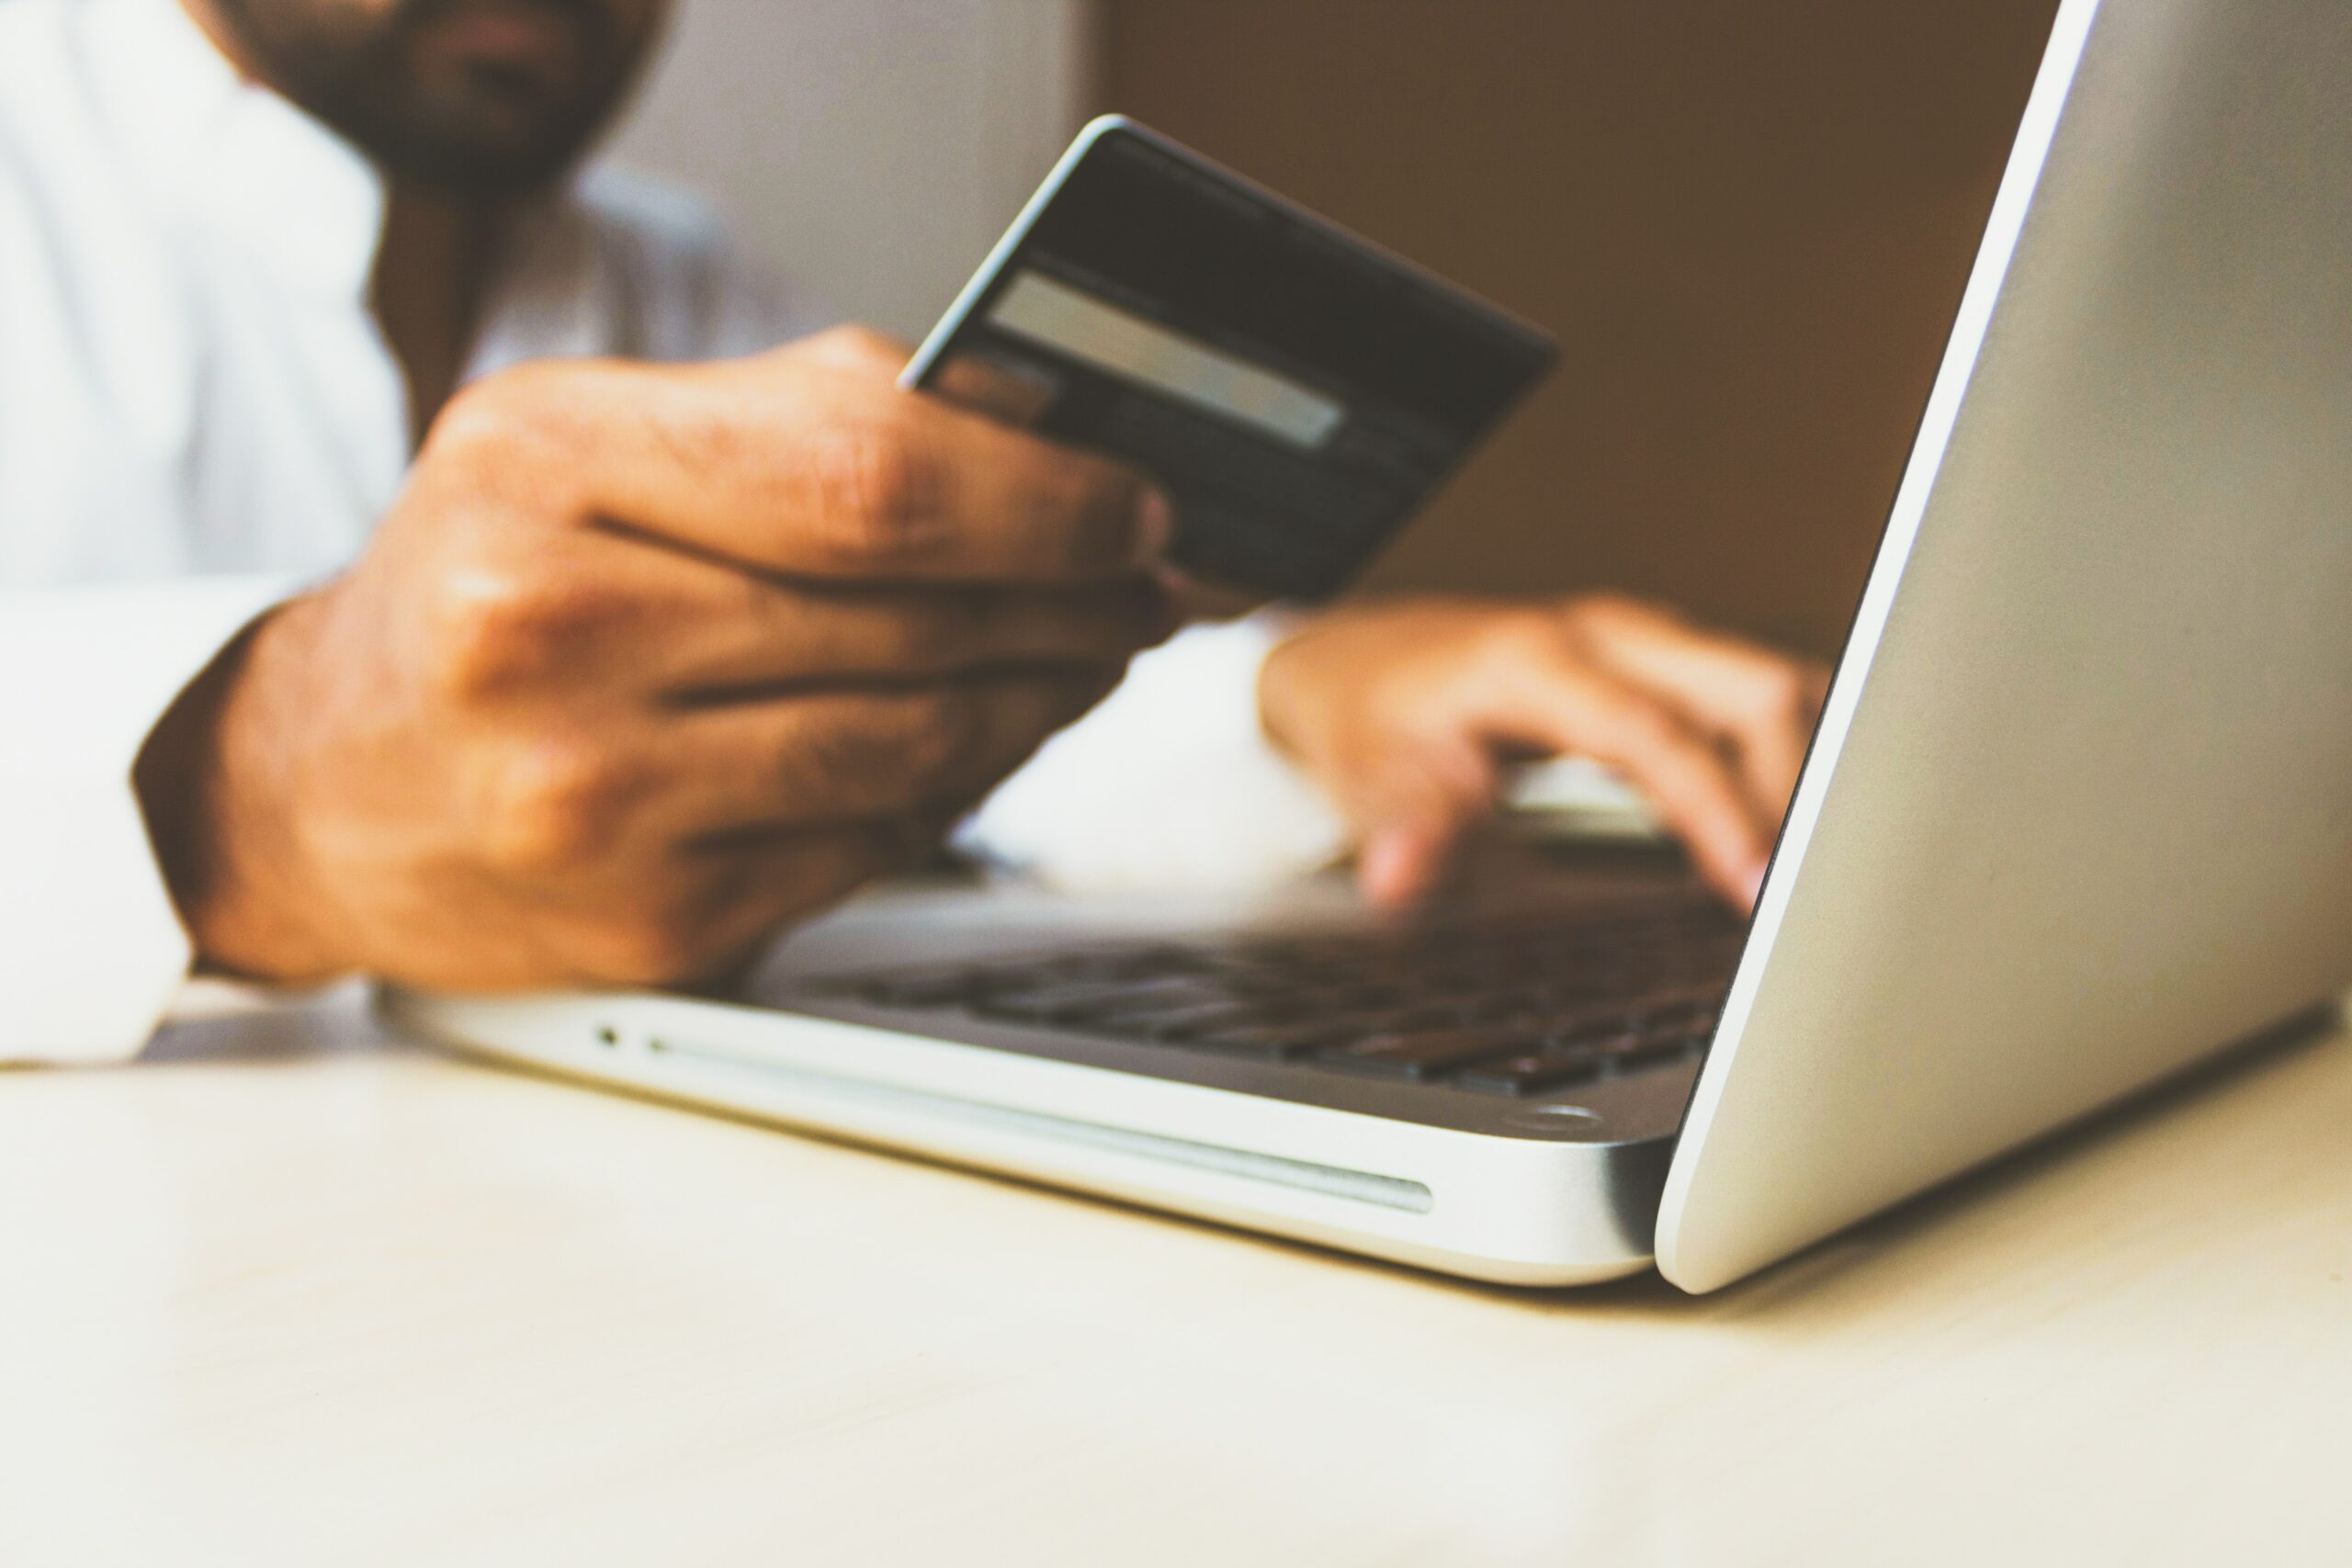 using a credit card to make payment on computer